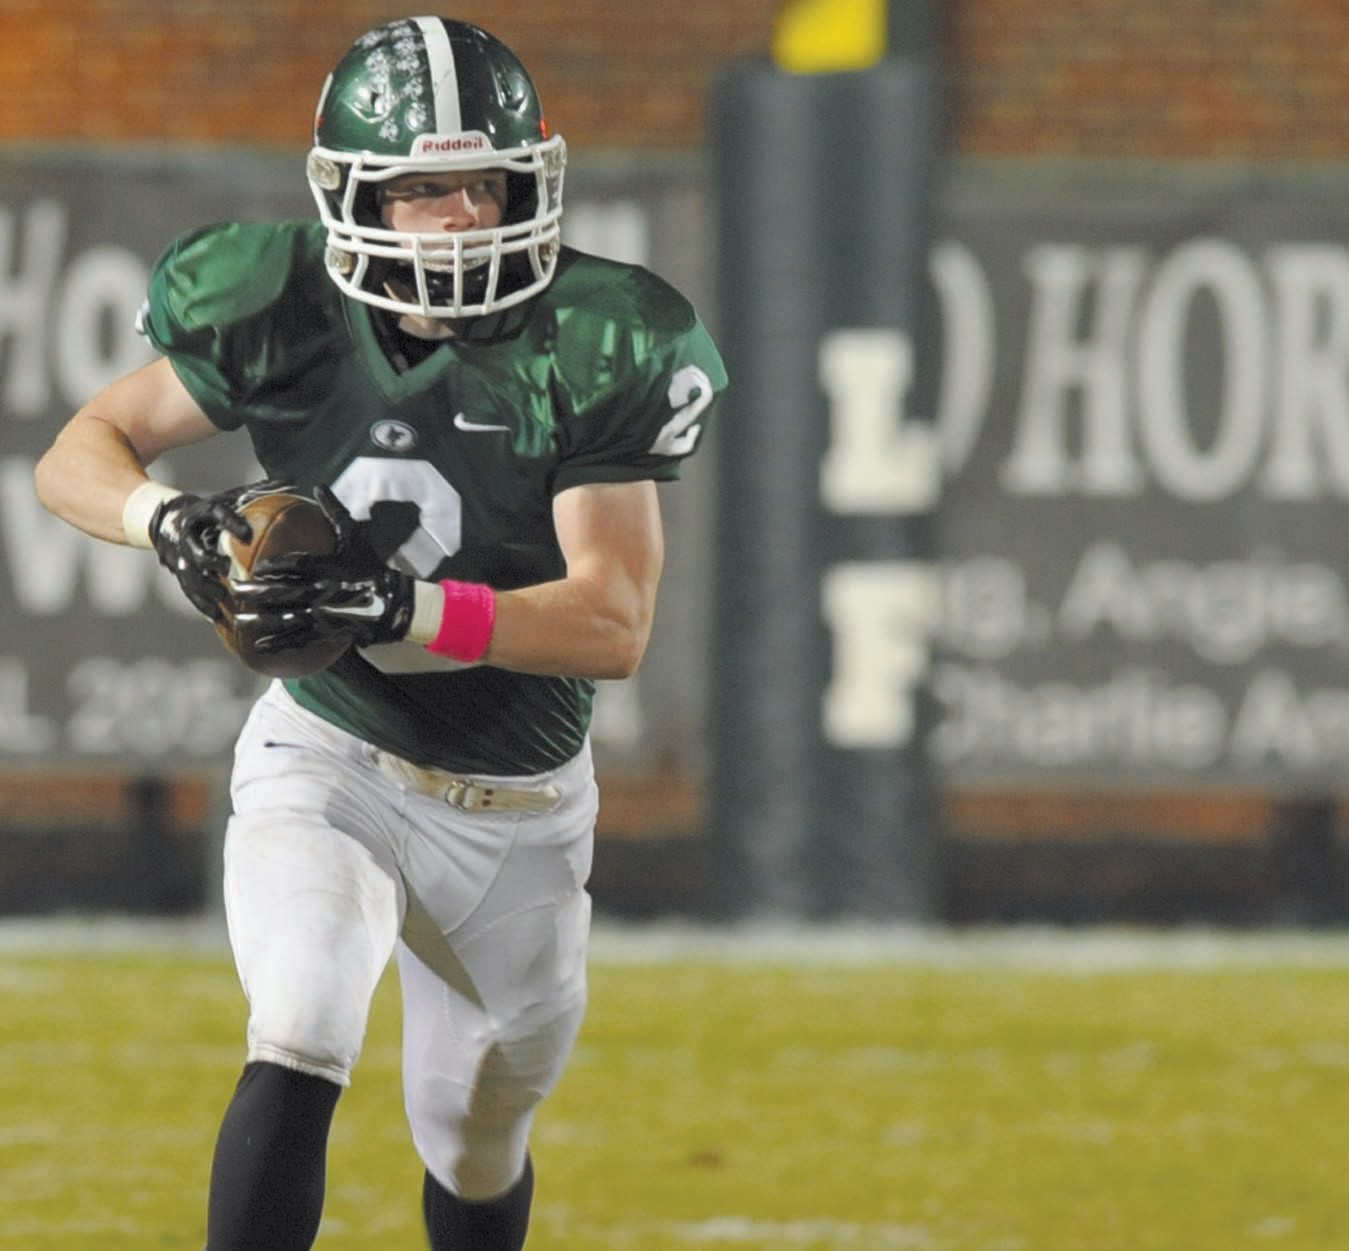 Locust Fork's Micah Stephens has plenty of room to run during the Hornets' 50-35 win over Priceville last Friday night. With the homecoming victory, Locust Fork is now 7-1 overall and 5-1 in 4A Region 7. Locust Fork travels to Blountsville to meet J.B. Pennington this week. With a win, Locust Fork could win or at the least tie for the region title.